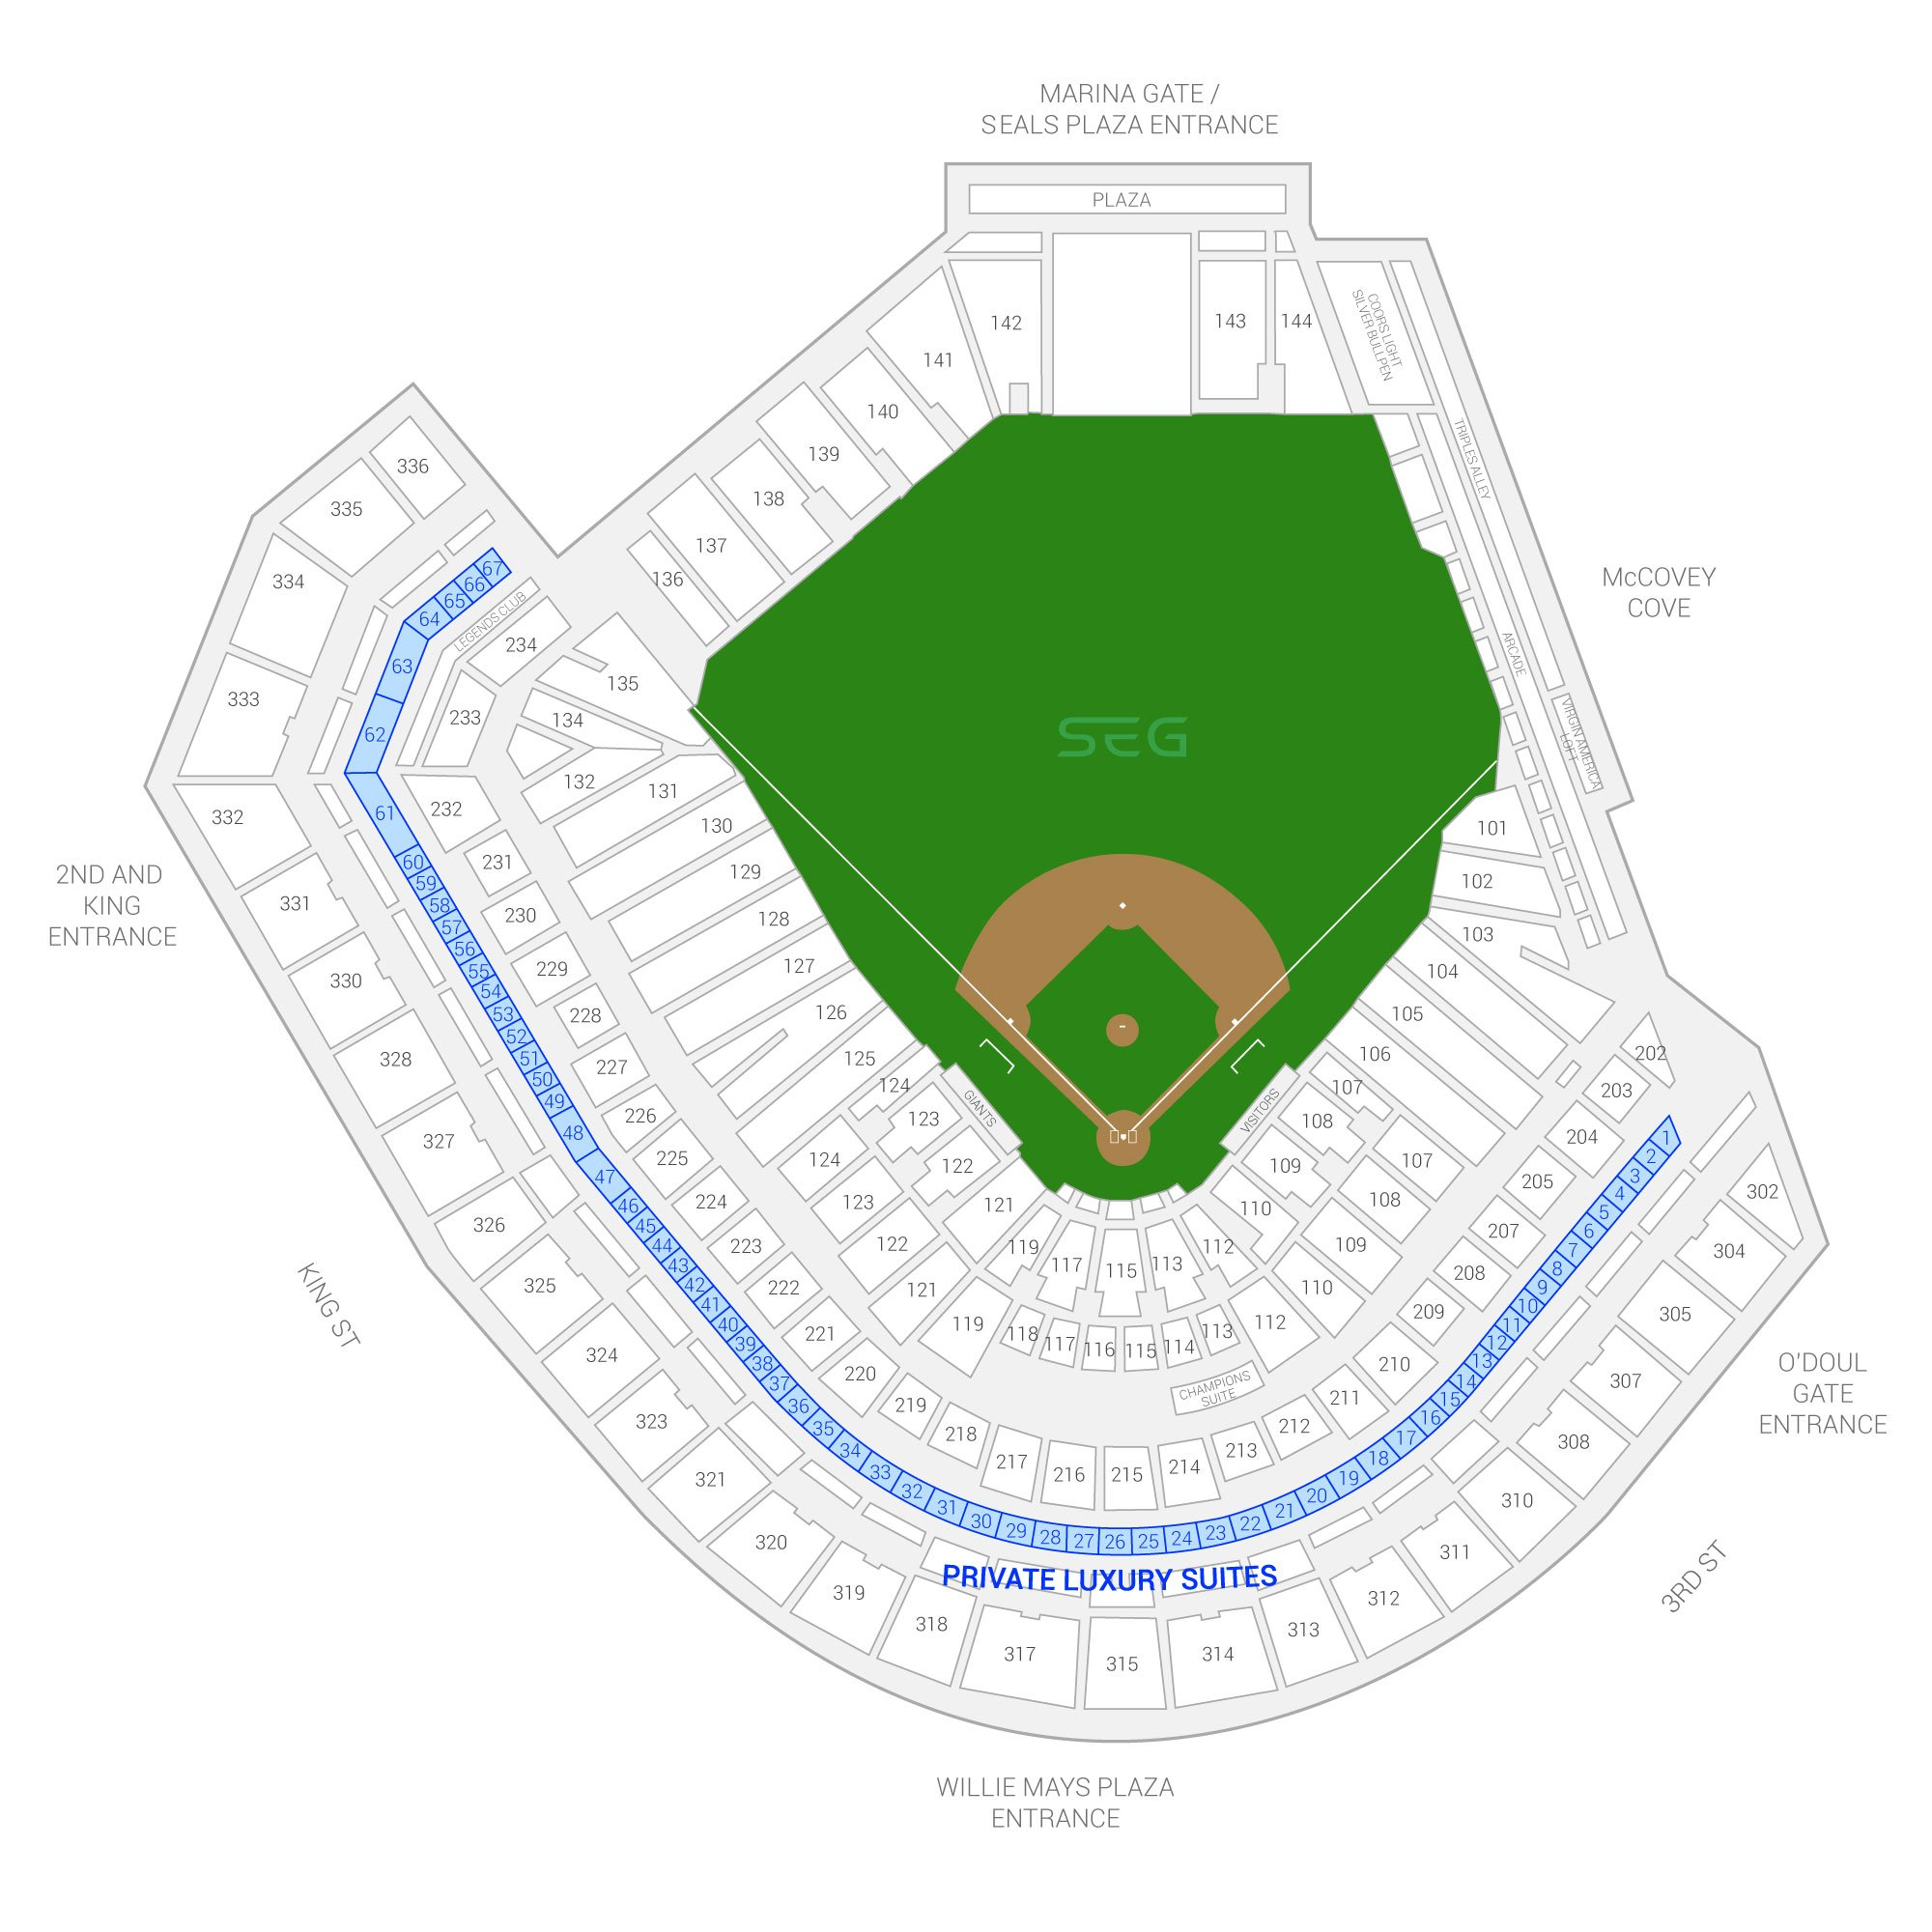 Oracle Park (Formerly AT&T Park) / San Francisco Giants Suite Map and Seating Chart